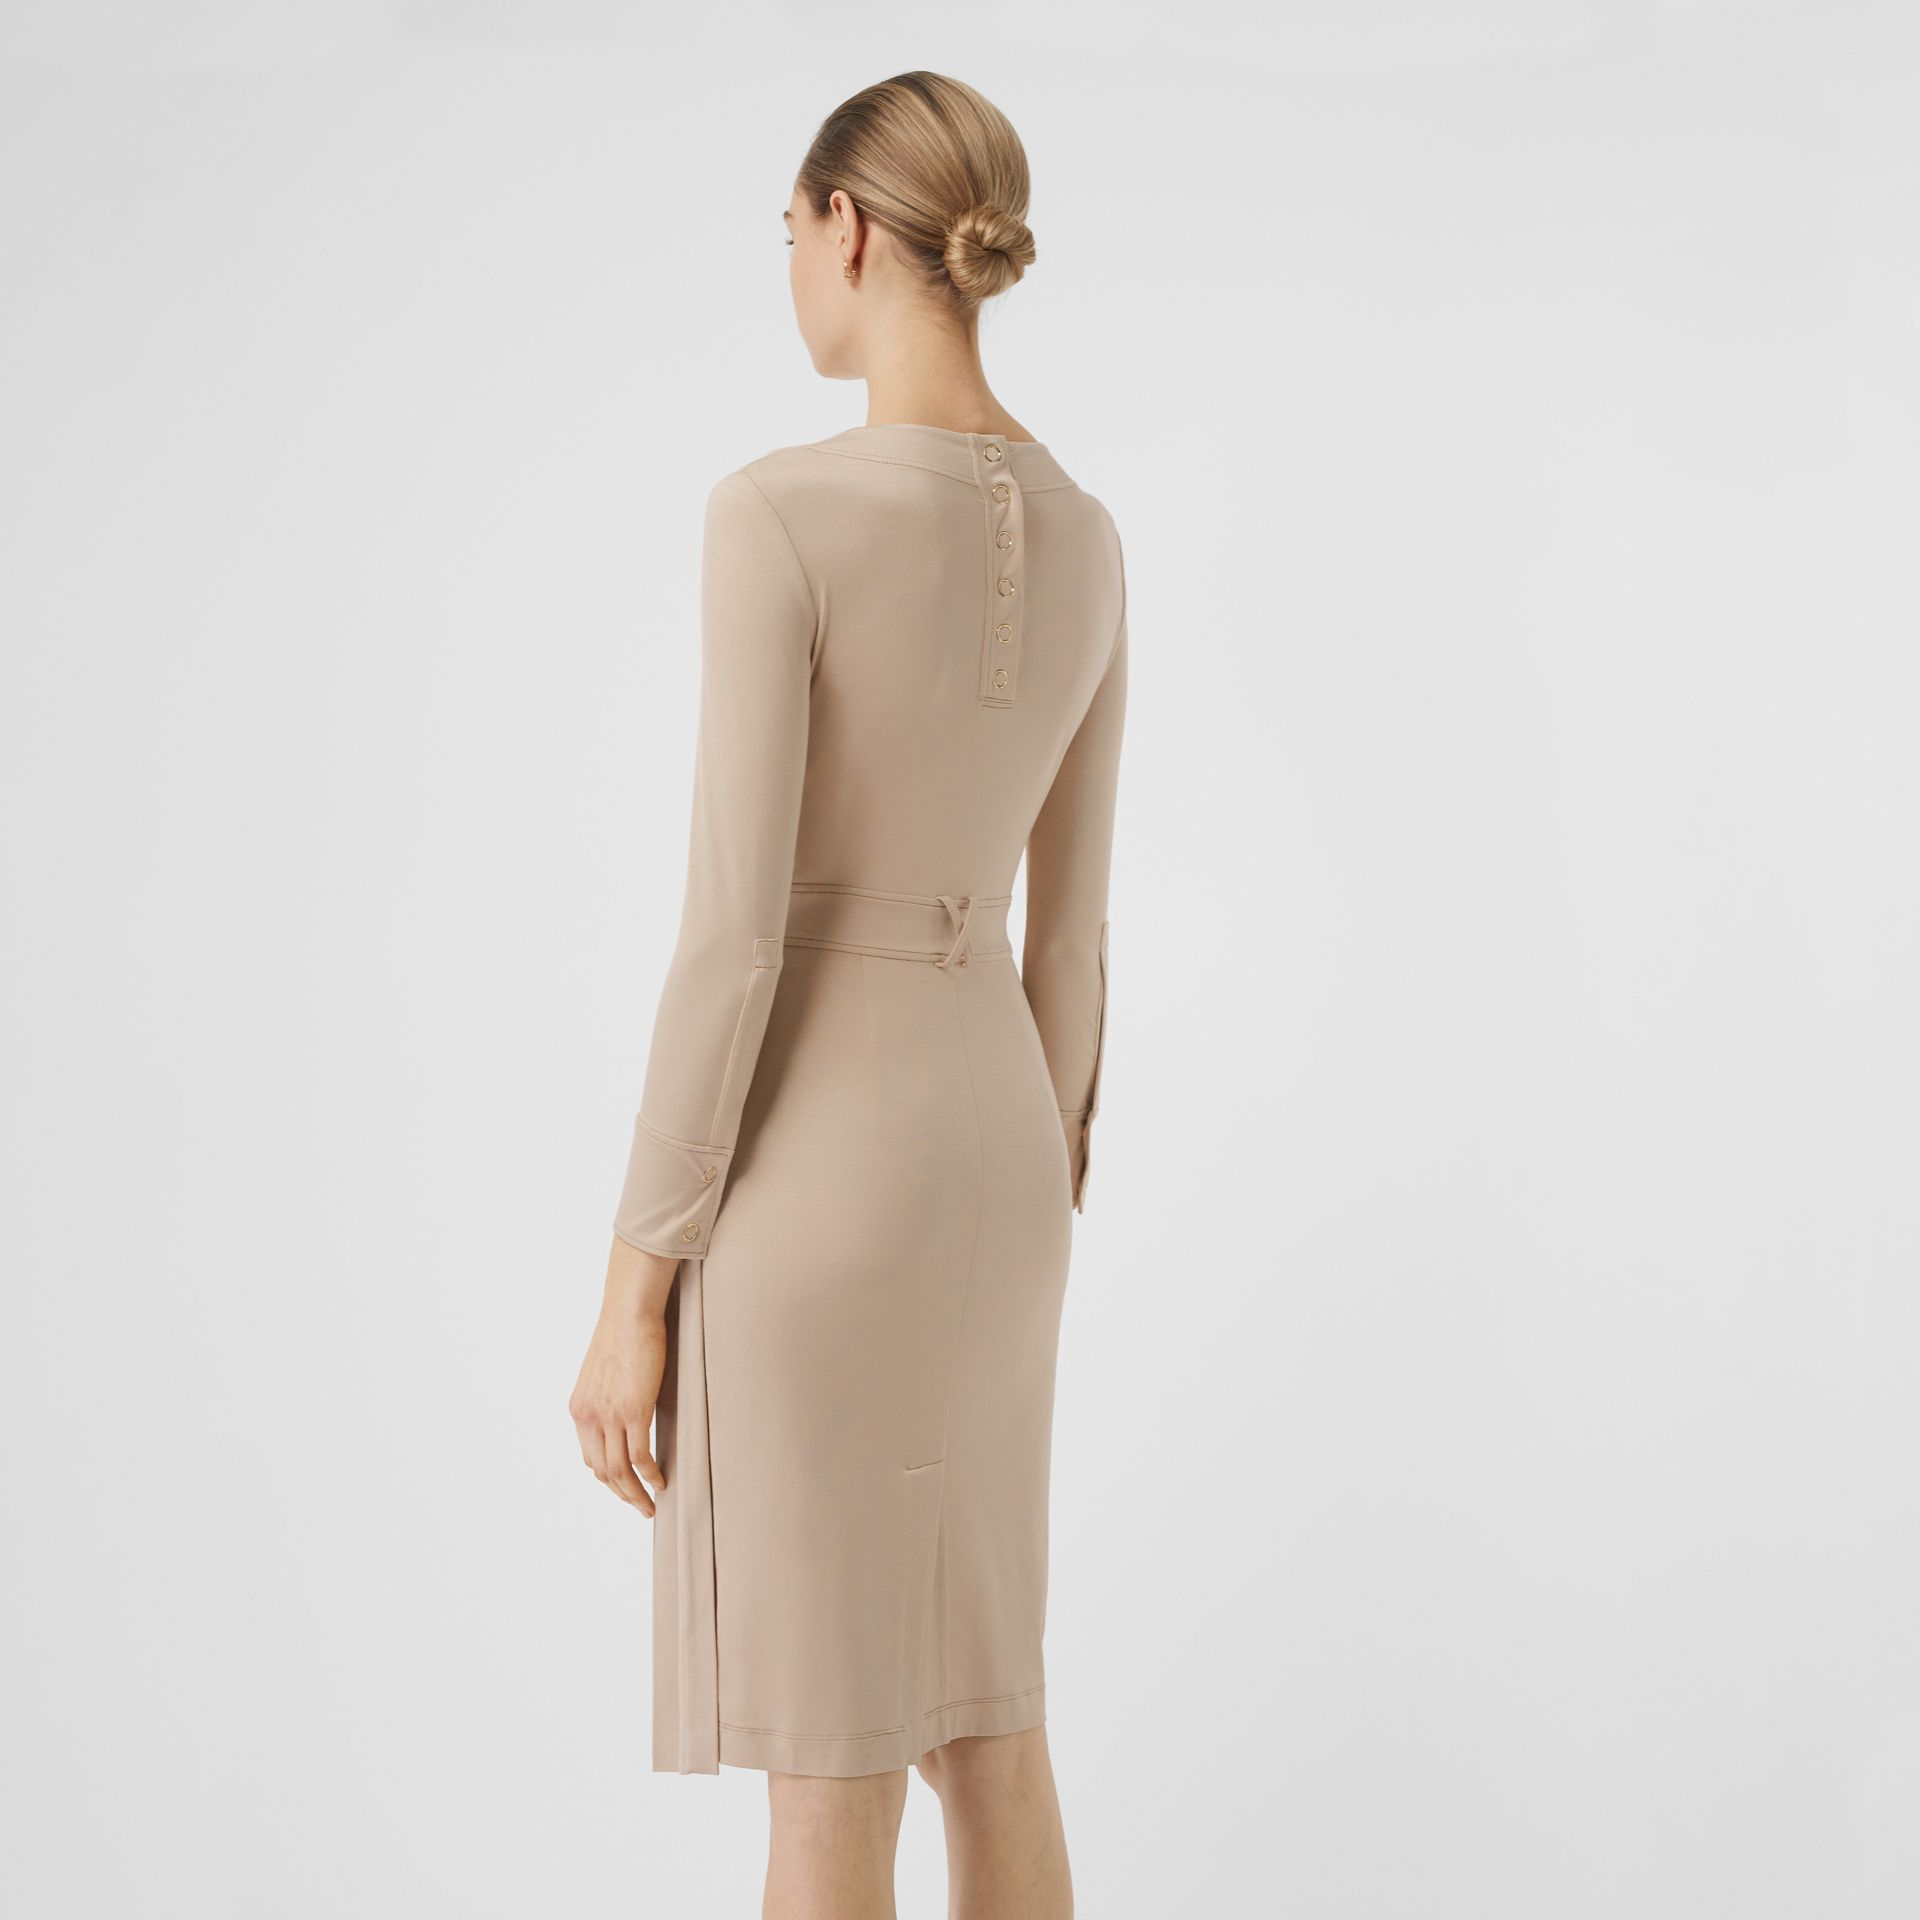 Long-sleeve Pleated Dress in Teddy Beige - Women | Burberry United Kingdom - gallery image 2